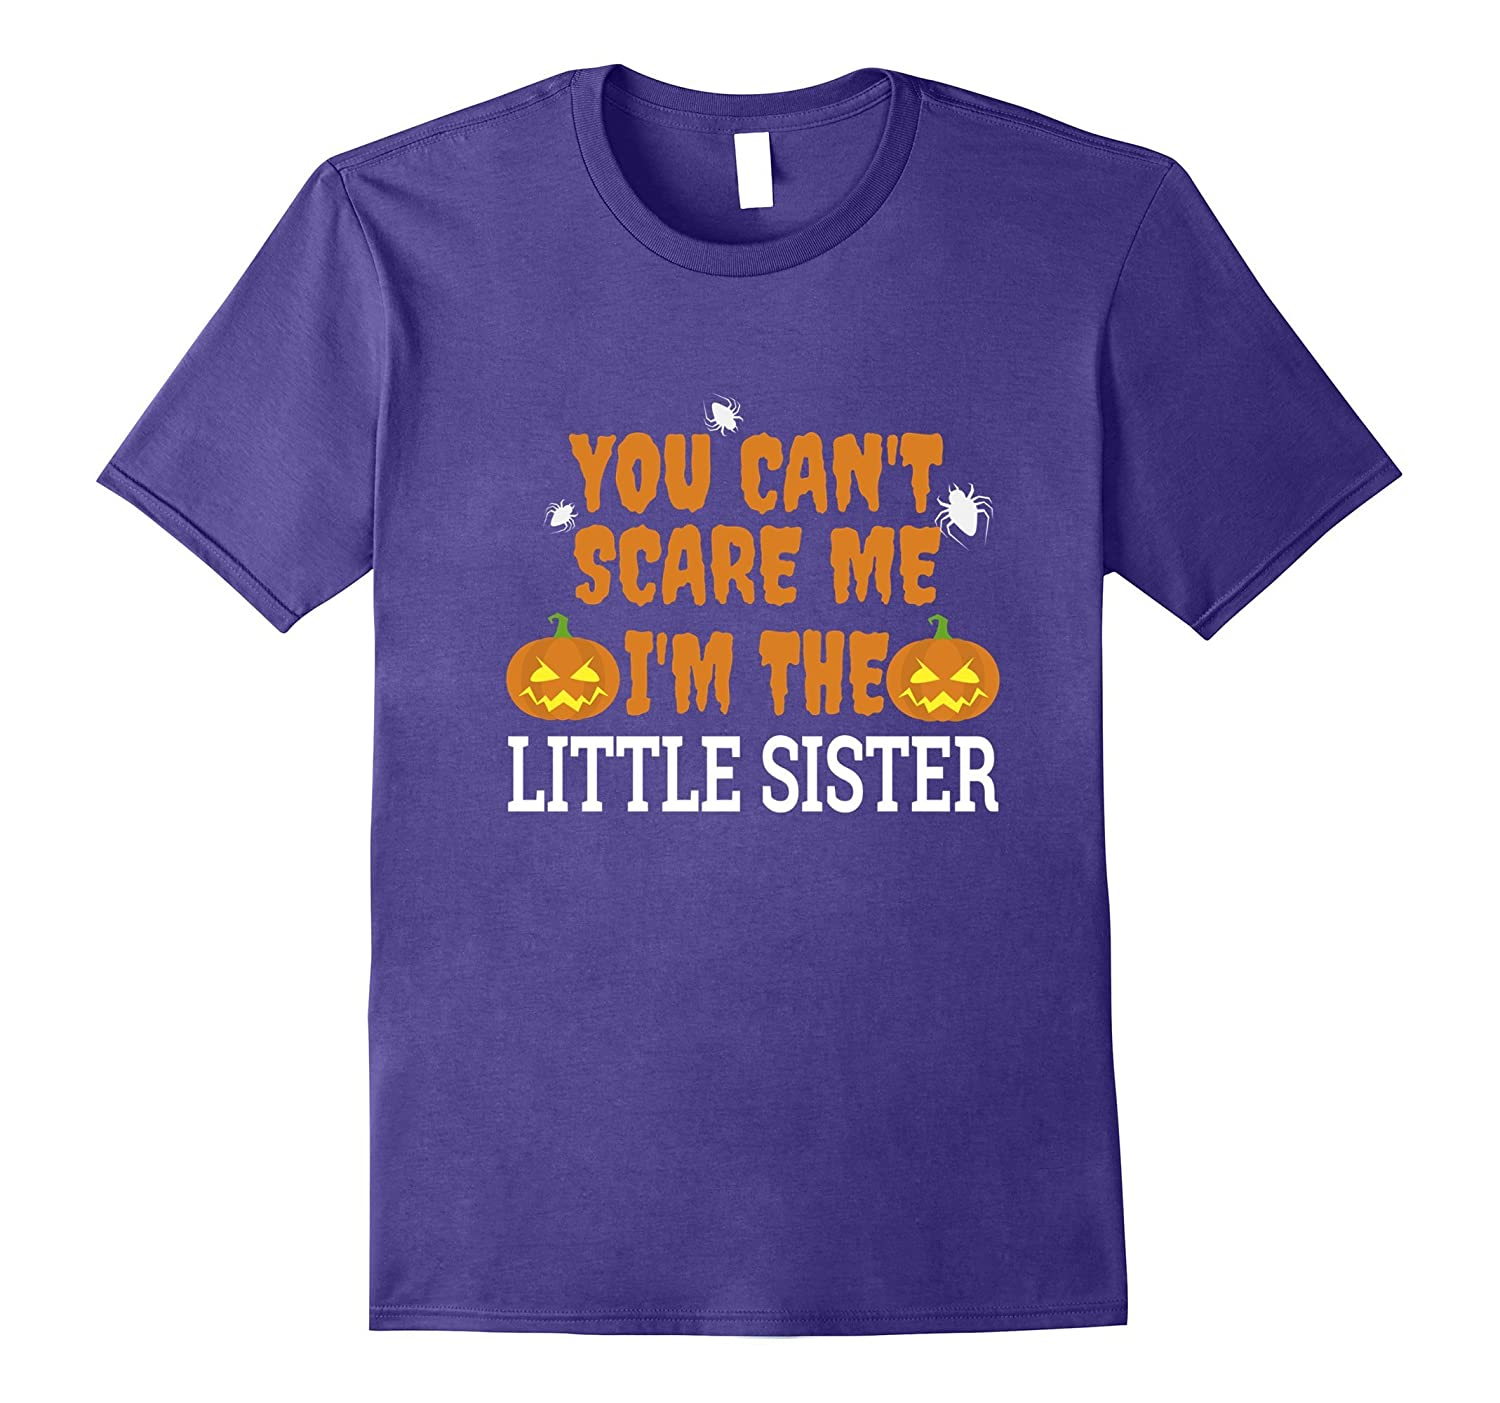 Can't Scare Me I'm Little Sister Fun Scary T-shirt Halloween-Art